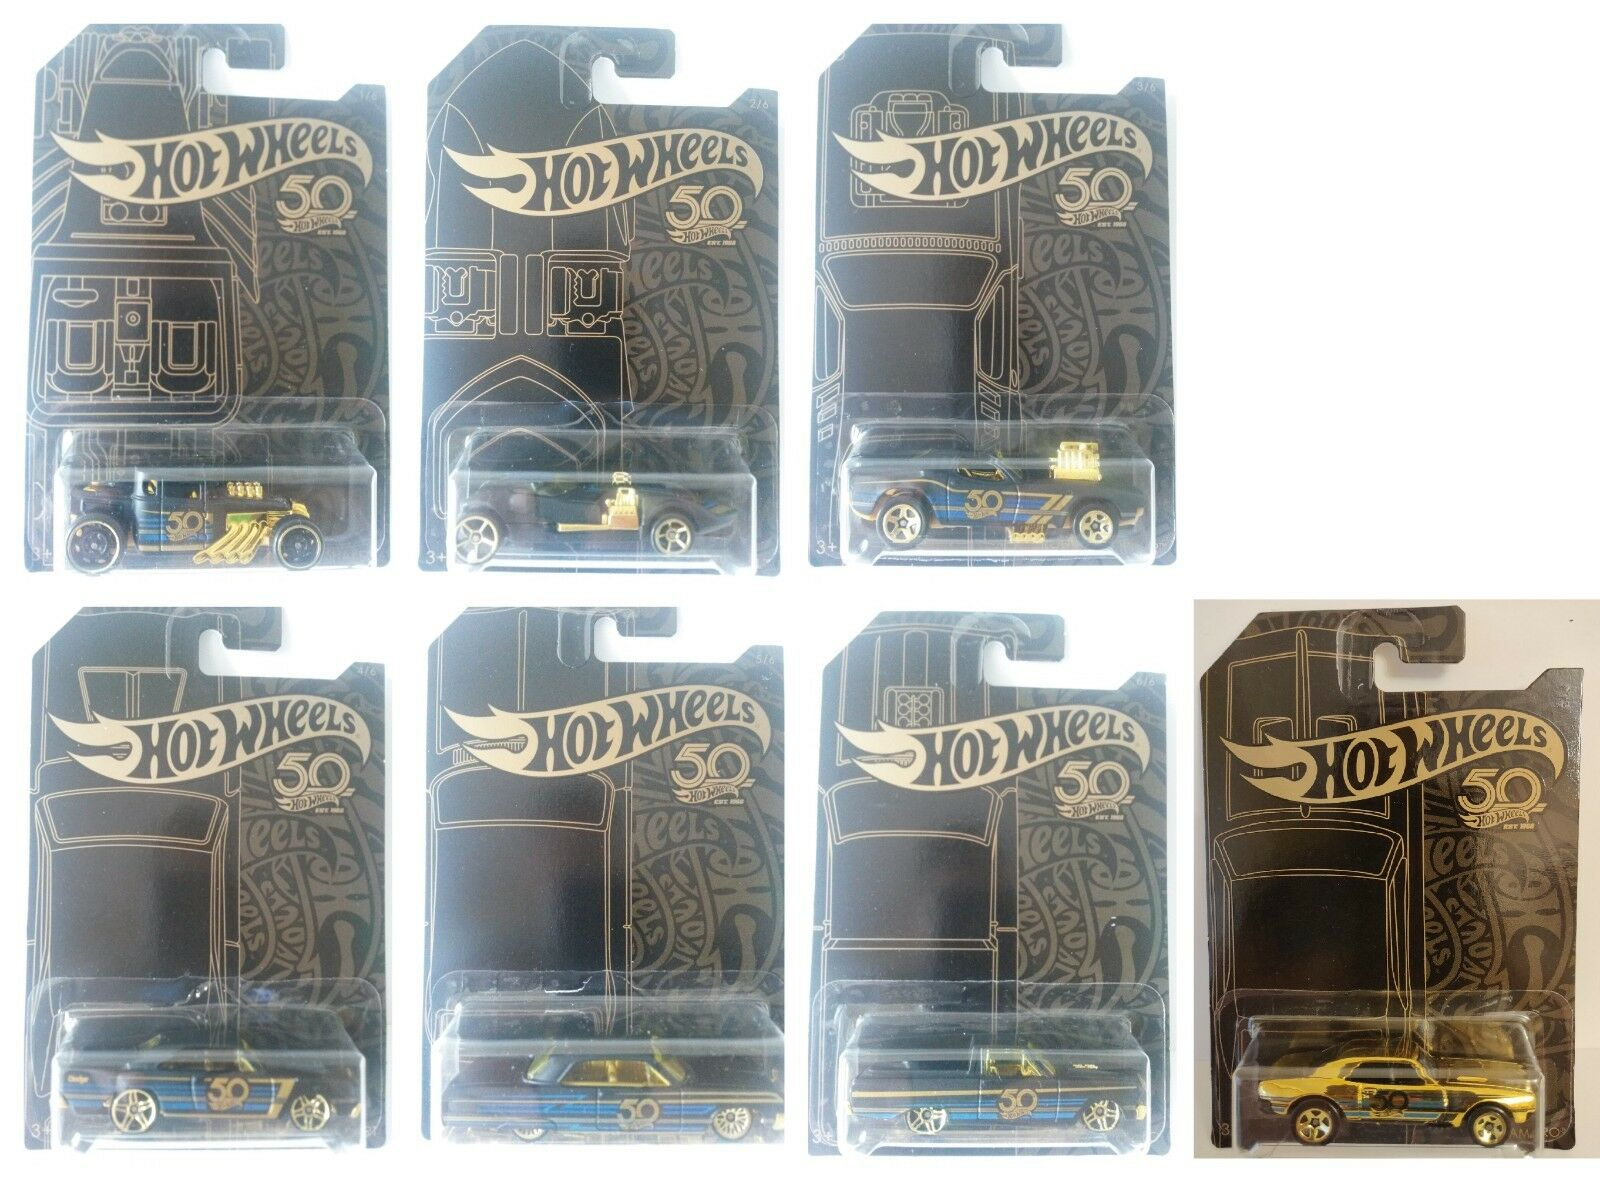 2018 Hot Wheels 50th Anniversary gold Series Diecast Metal Toy Cars SET OF 7